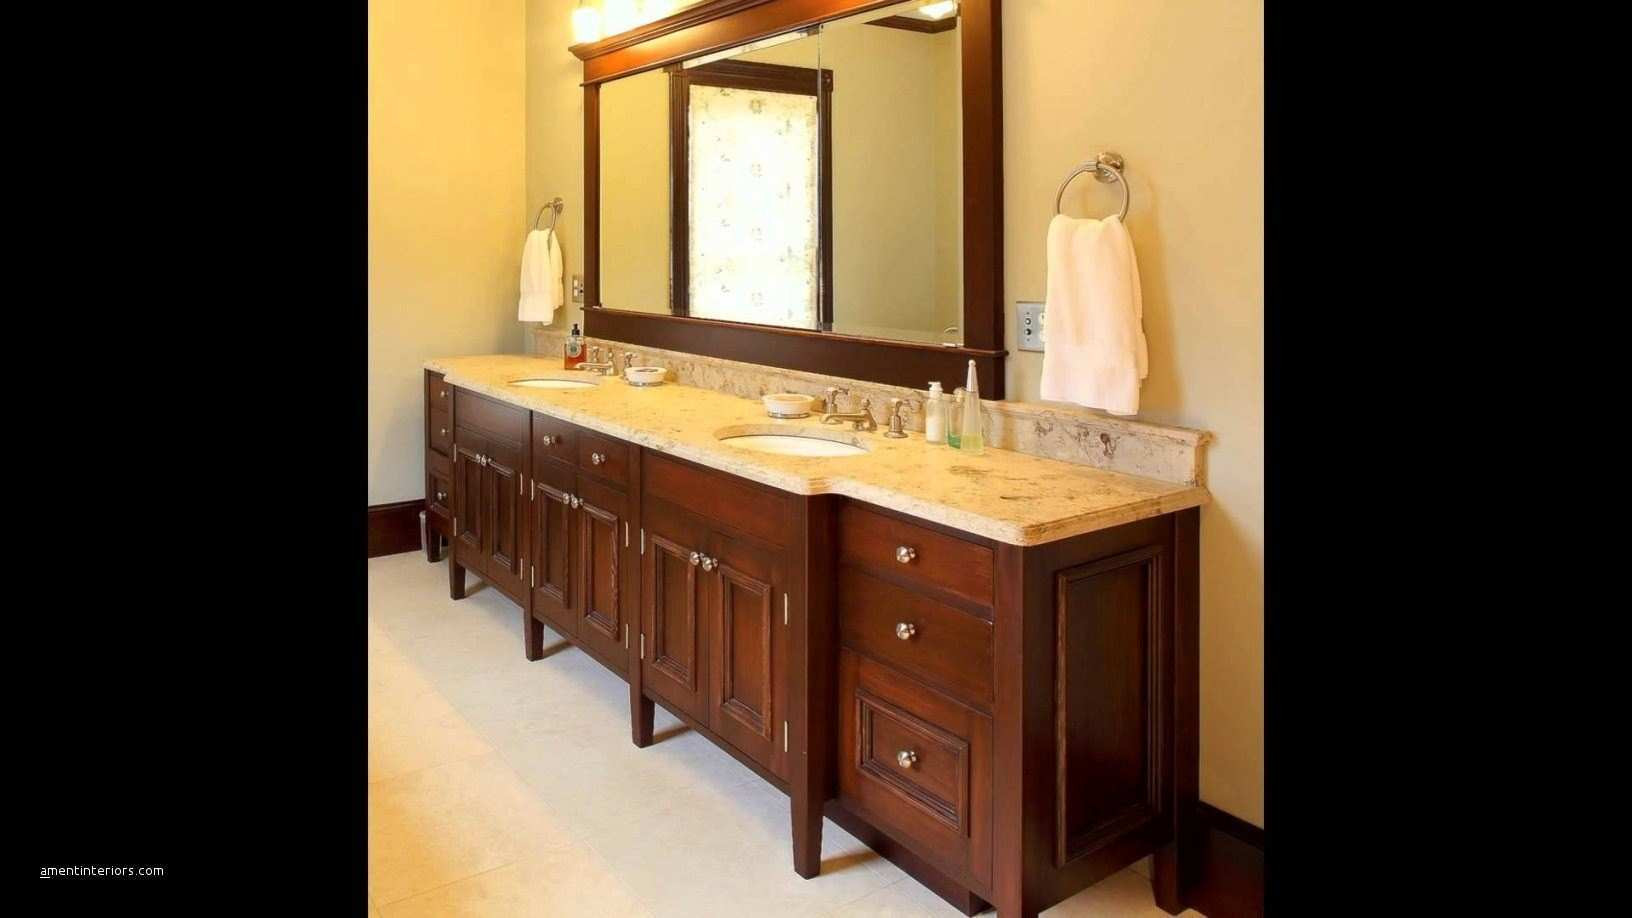 hardwood flooring clearance closeout of buy closeout bathroom vanities with bathroom sink cabinets beautiful in classic closeout bathroom vanities with stylish bathroom vanities cheap apartamentoselgoleto com